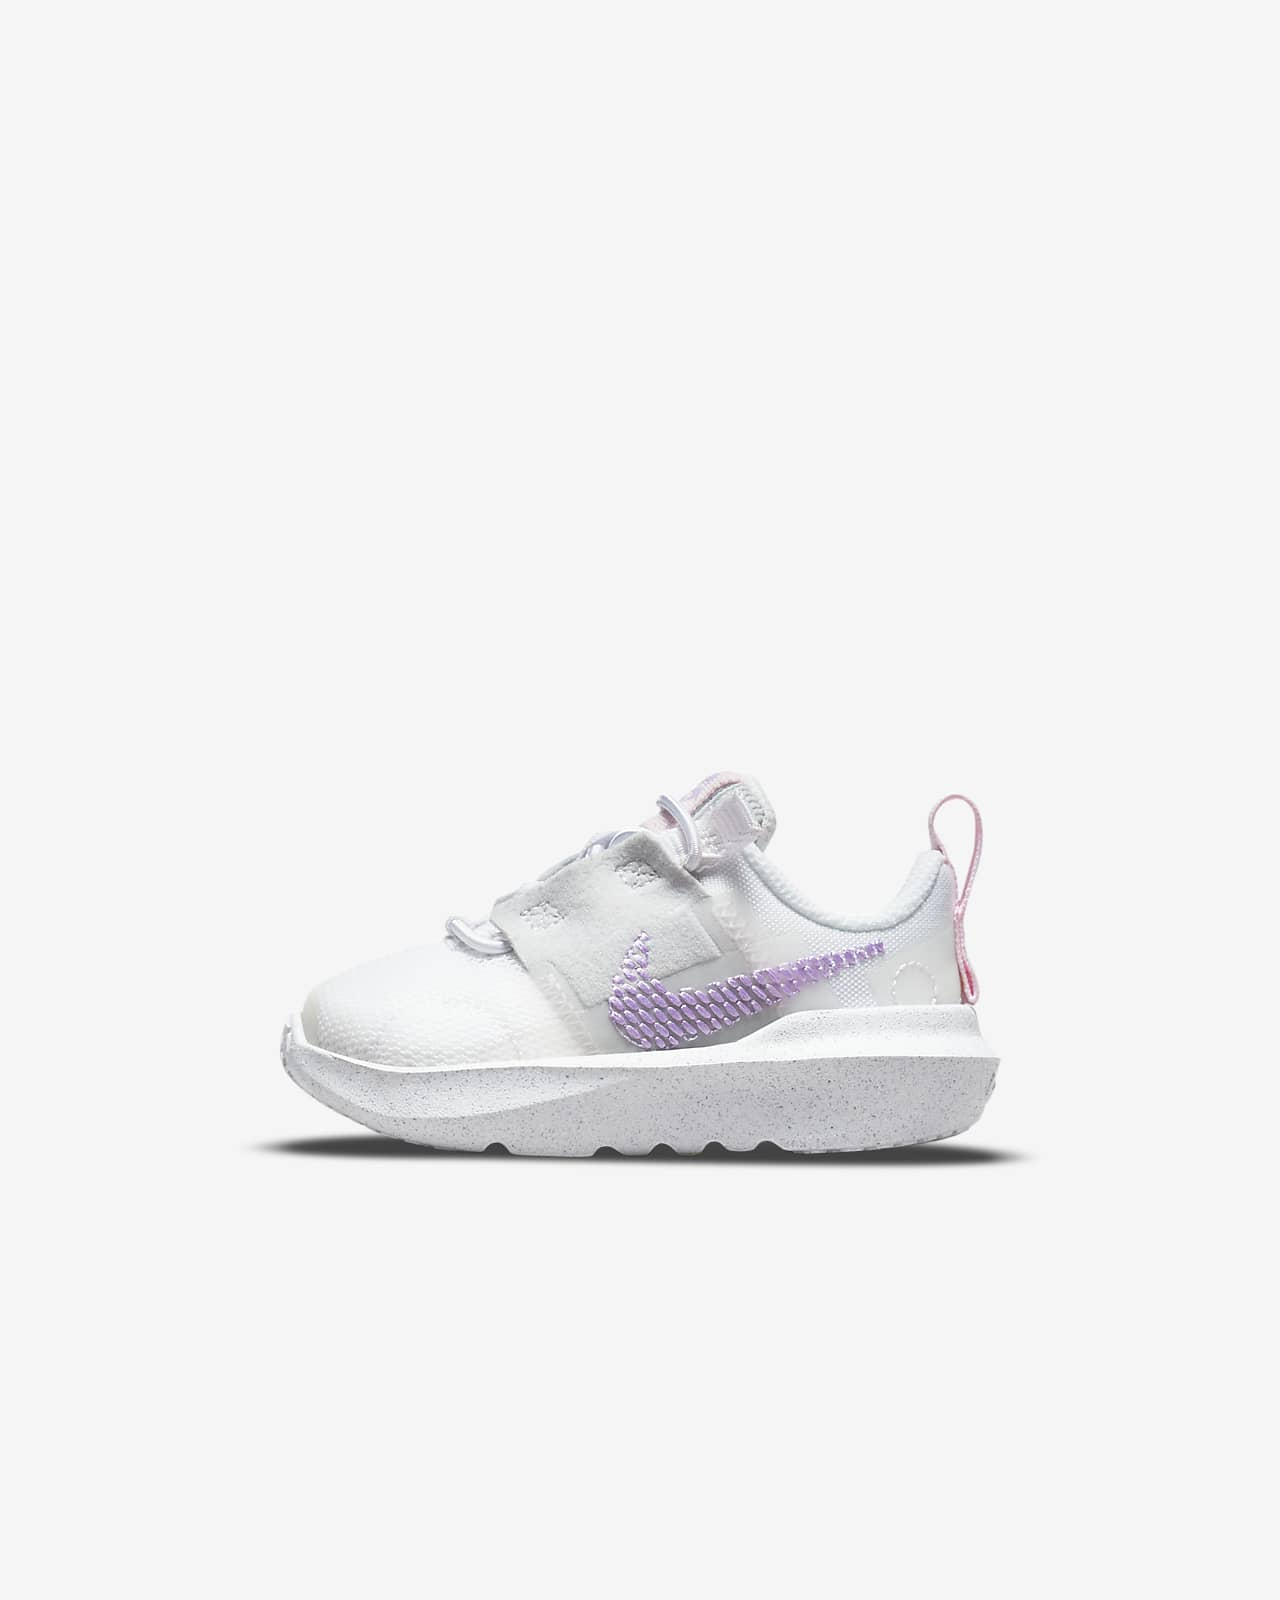 Nike Crater Impact Baby/Toddler Shoes